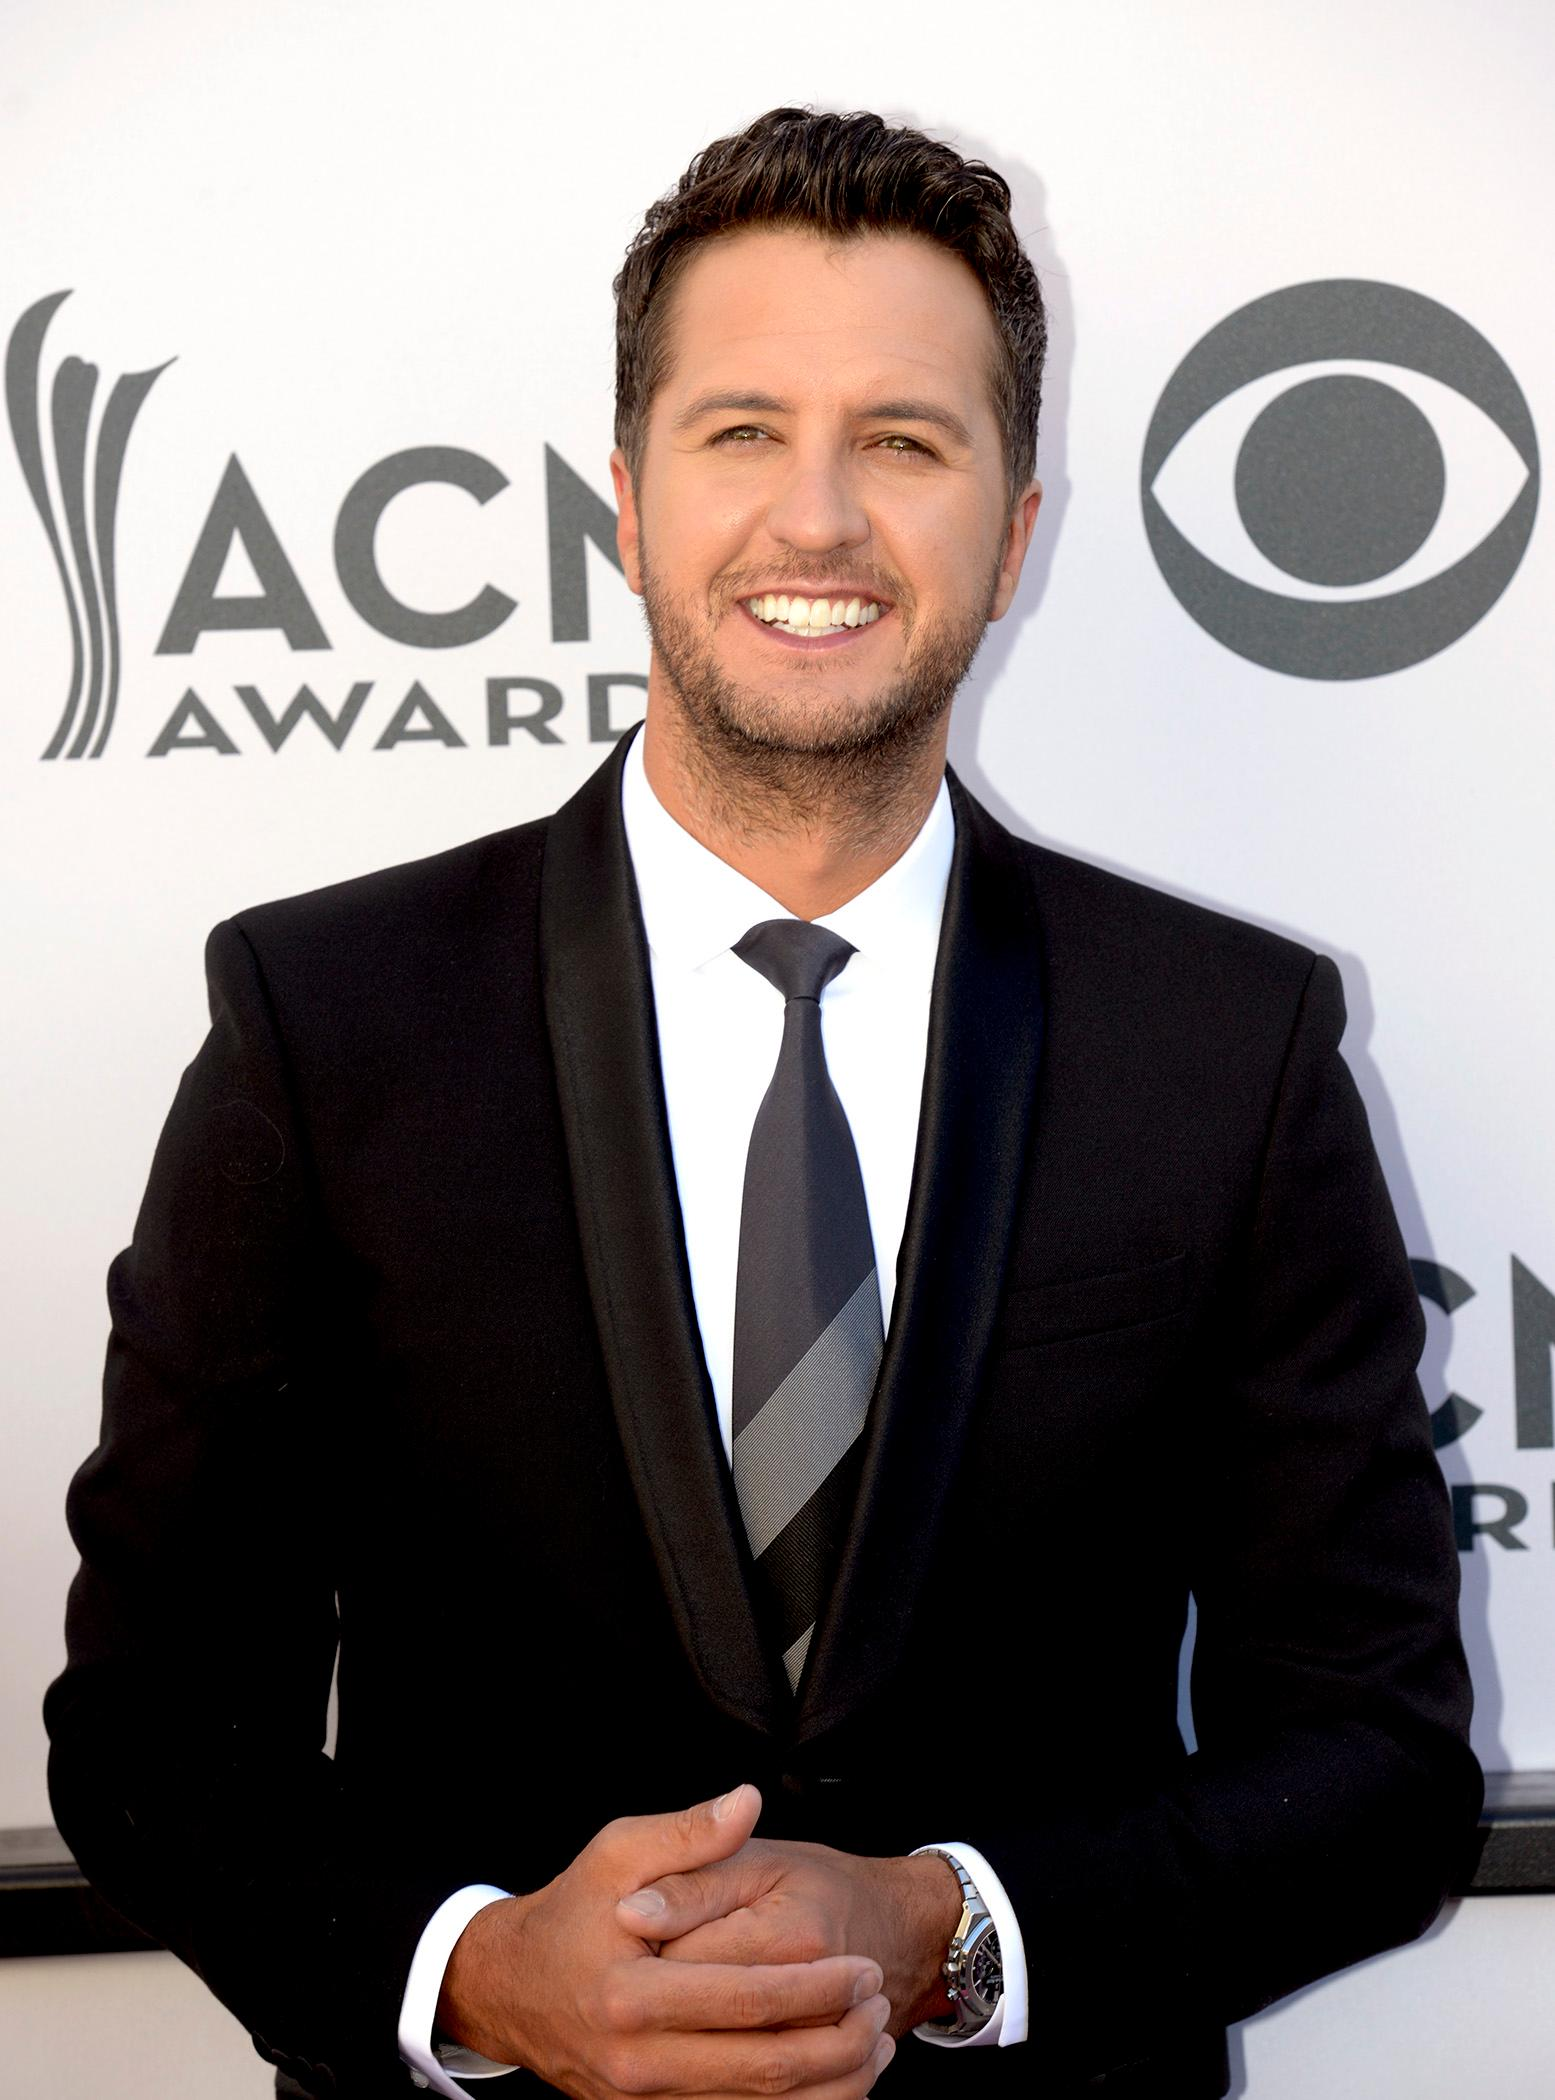 Luke Bryan host of the Academy of Country Music Awards walks the red carpet at T-Mobile Arena. Sunday, April 2, 2017. (Glenn Pinkerton/ Las Vegas News Bureau)